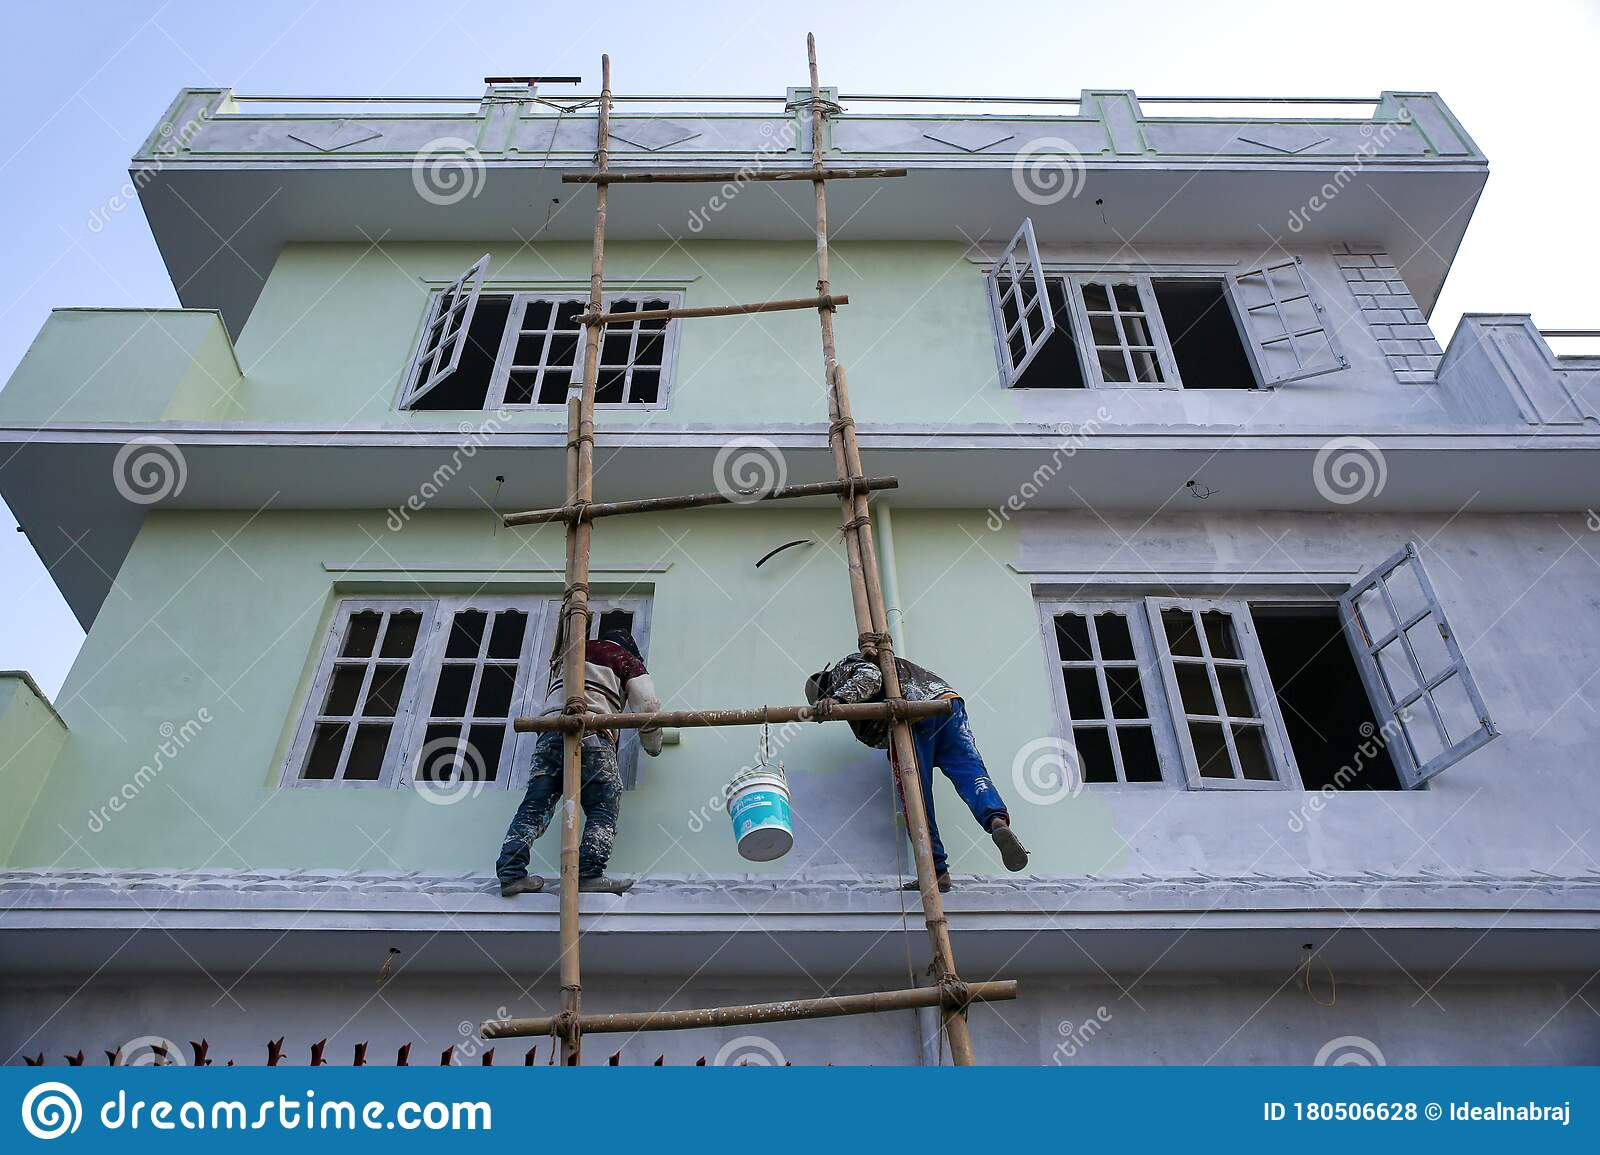 House Painters Painting Outside Of The House With Paint Brush Roller And Bamboo Ladder Editorial Stock Photo Image Of Abstract Construction 180506628